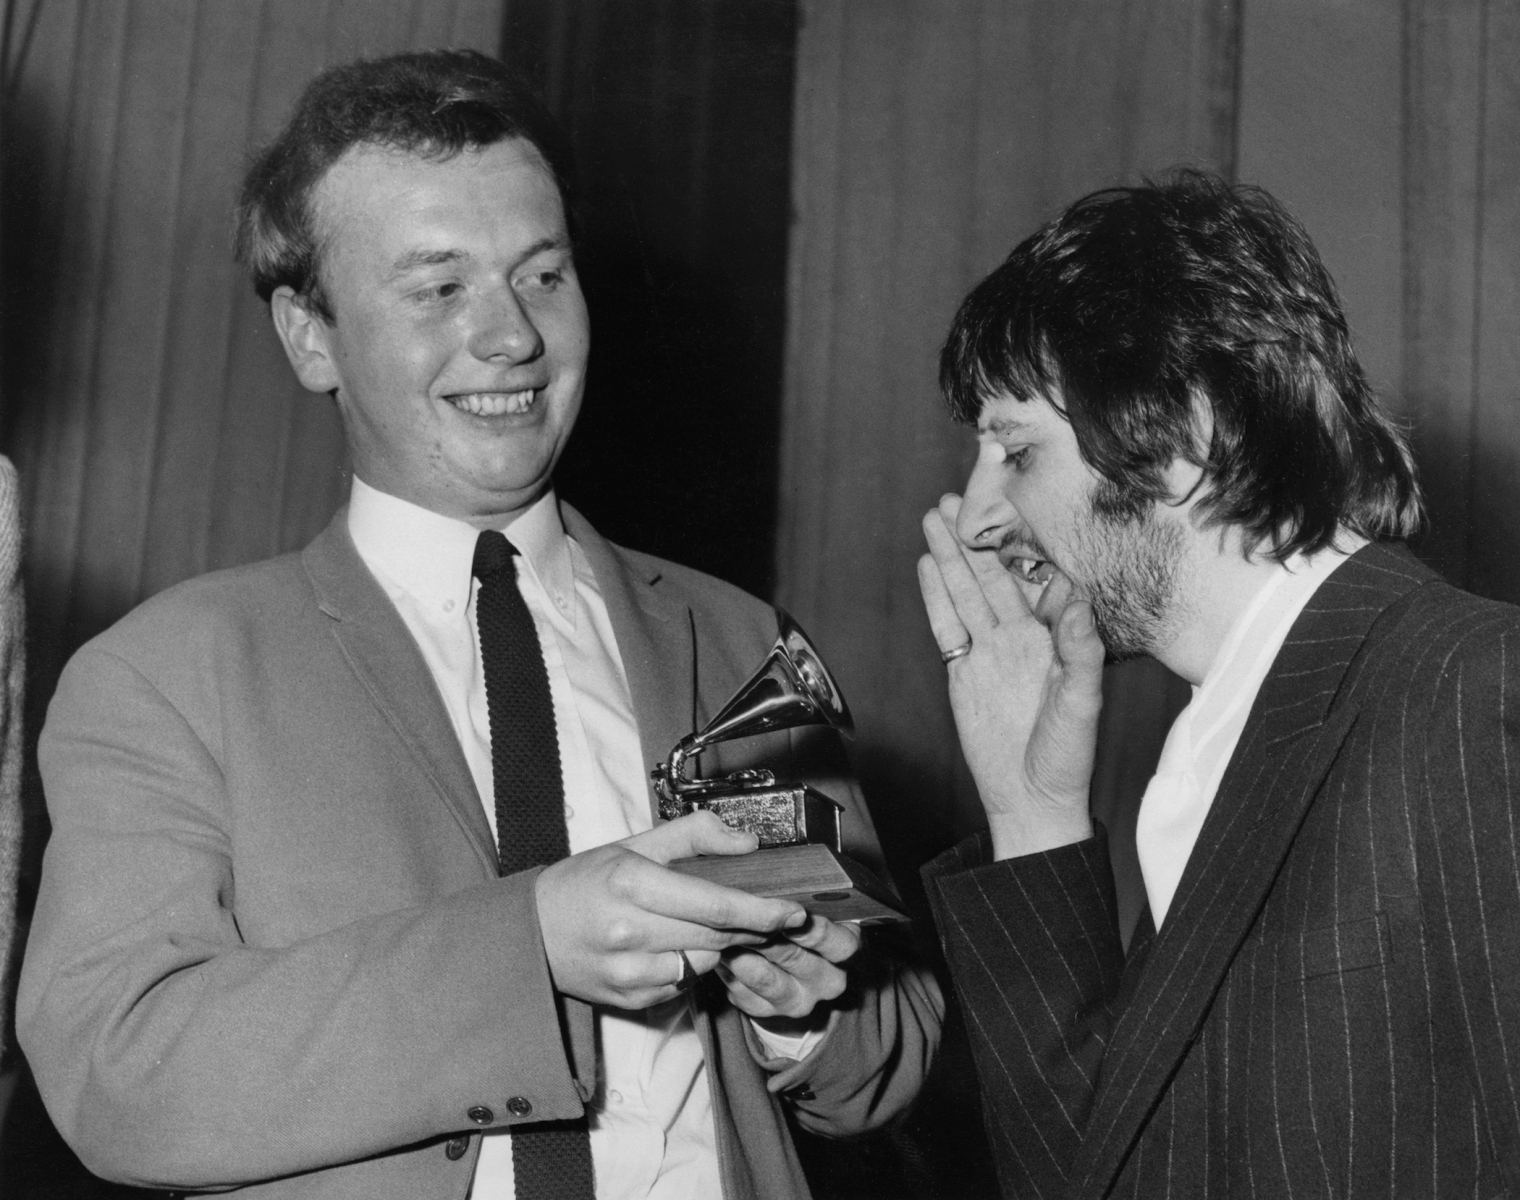 Drummer Ringo Starr of English congratulates EMI recording studio audio engineer Geoff Emerick (left) on his Grammy Award at the EMI studios in London, 7th March 1968. Emerick recently passed away at the age of 72. (Photo by Monti Spry/Central Press/Hulton Archive/Getty Images)